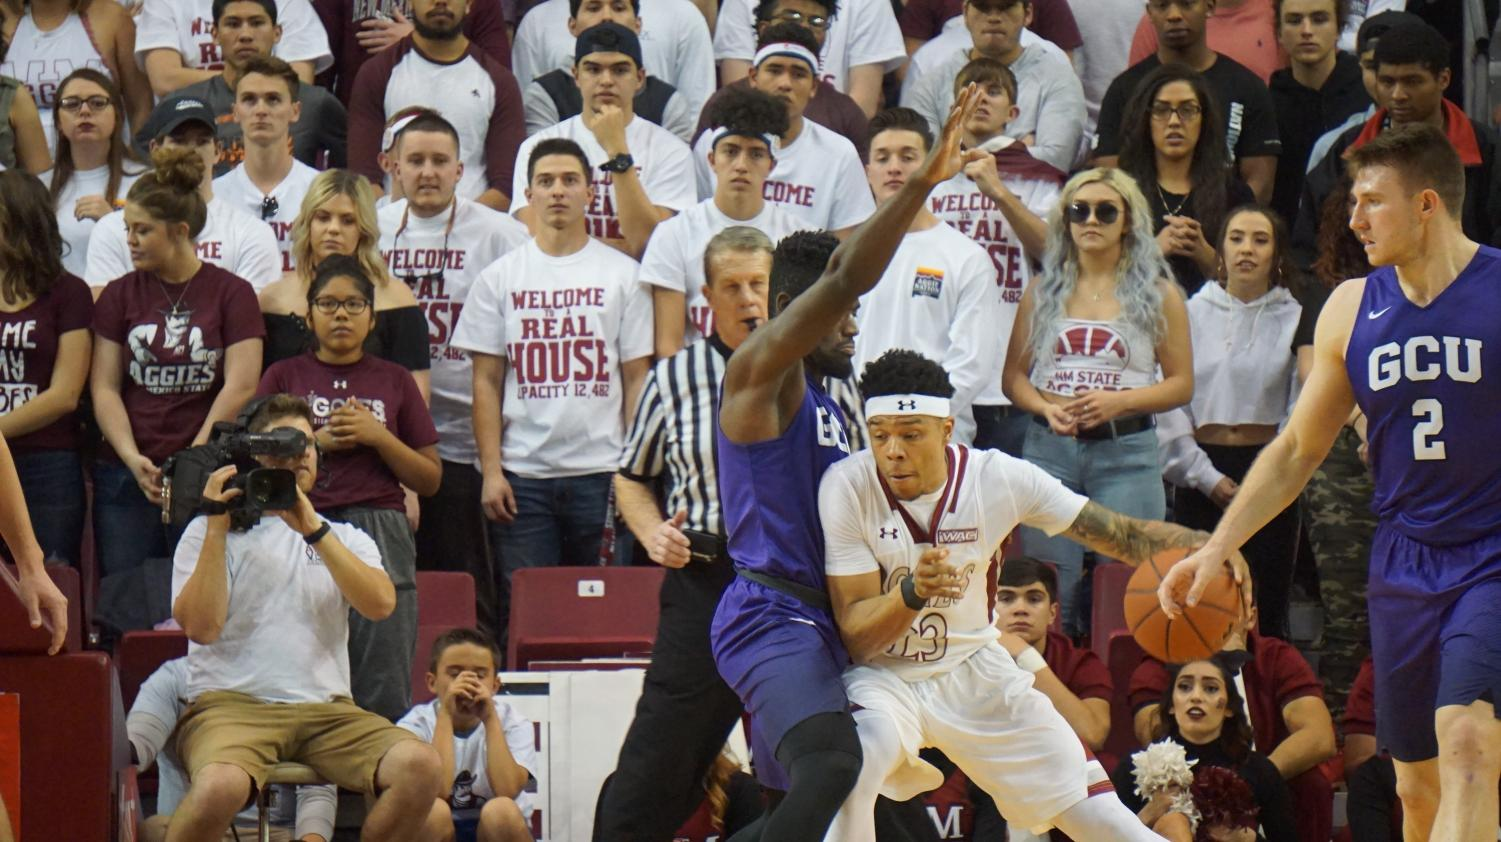 NMSU's Zach Lofton muscles his way to the basket on Saturday night in front of a sold out crowd.